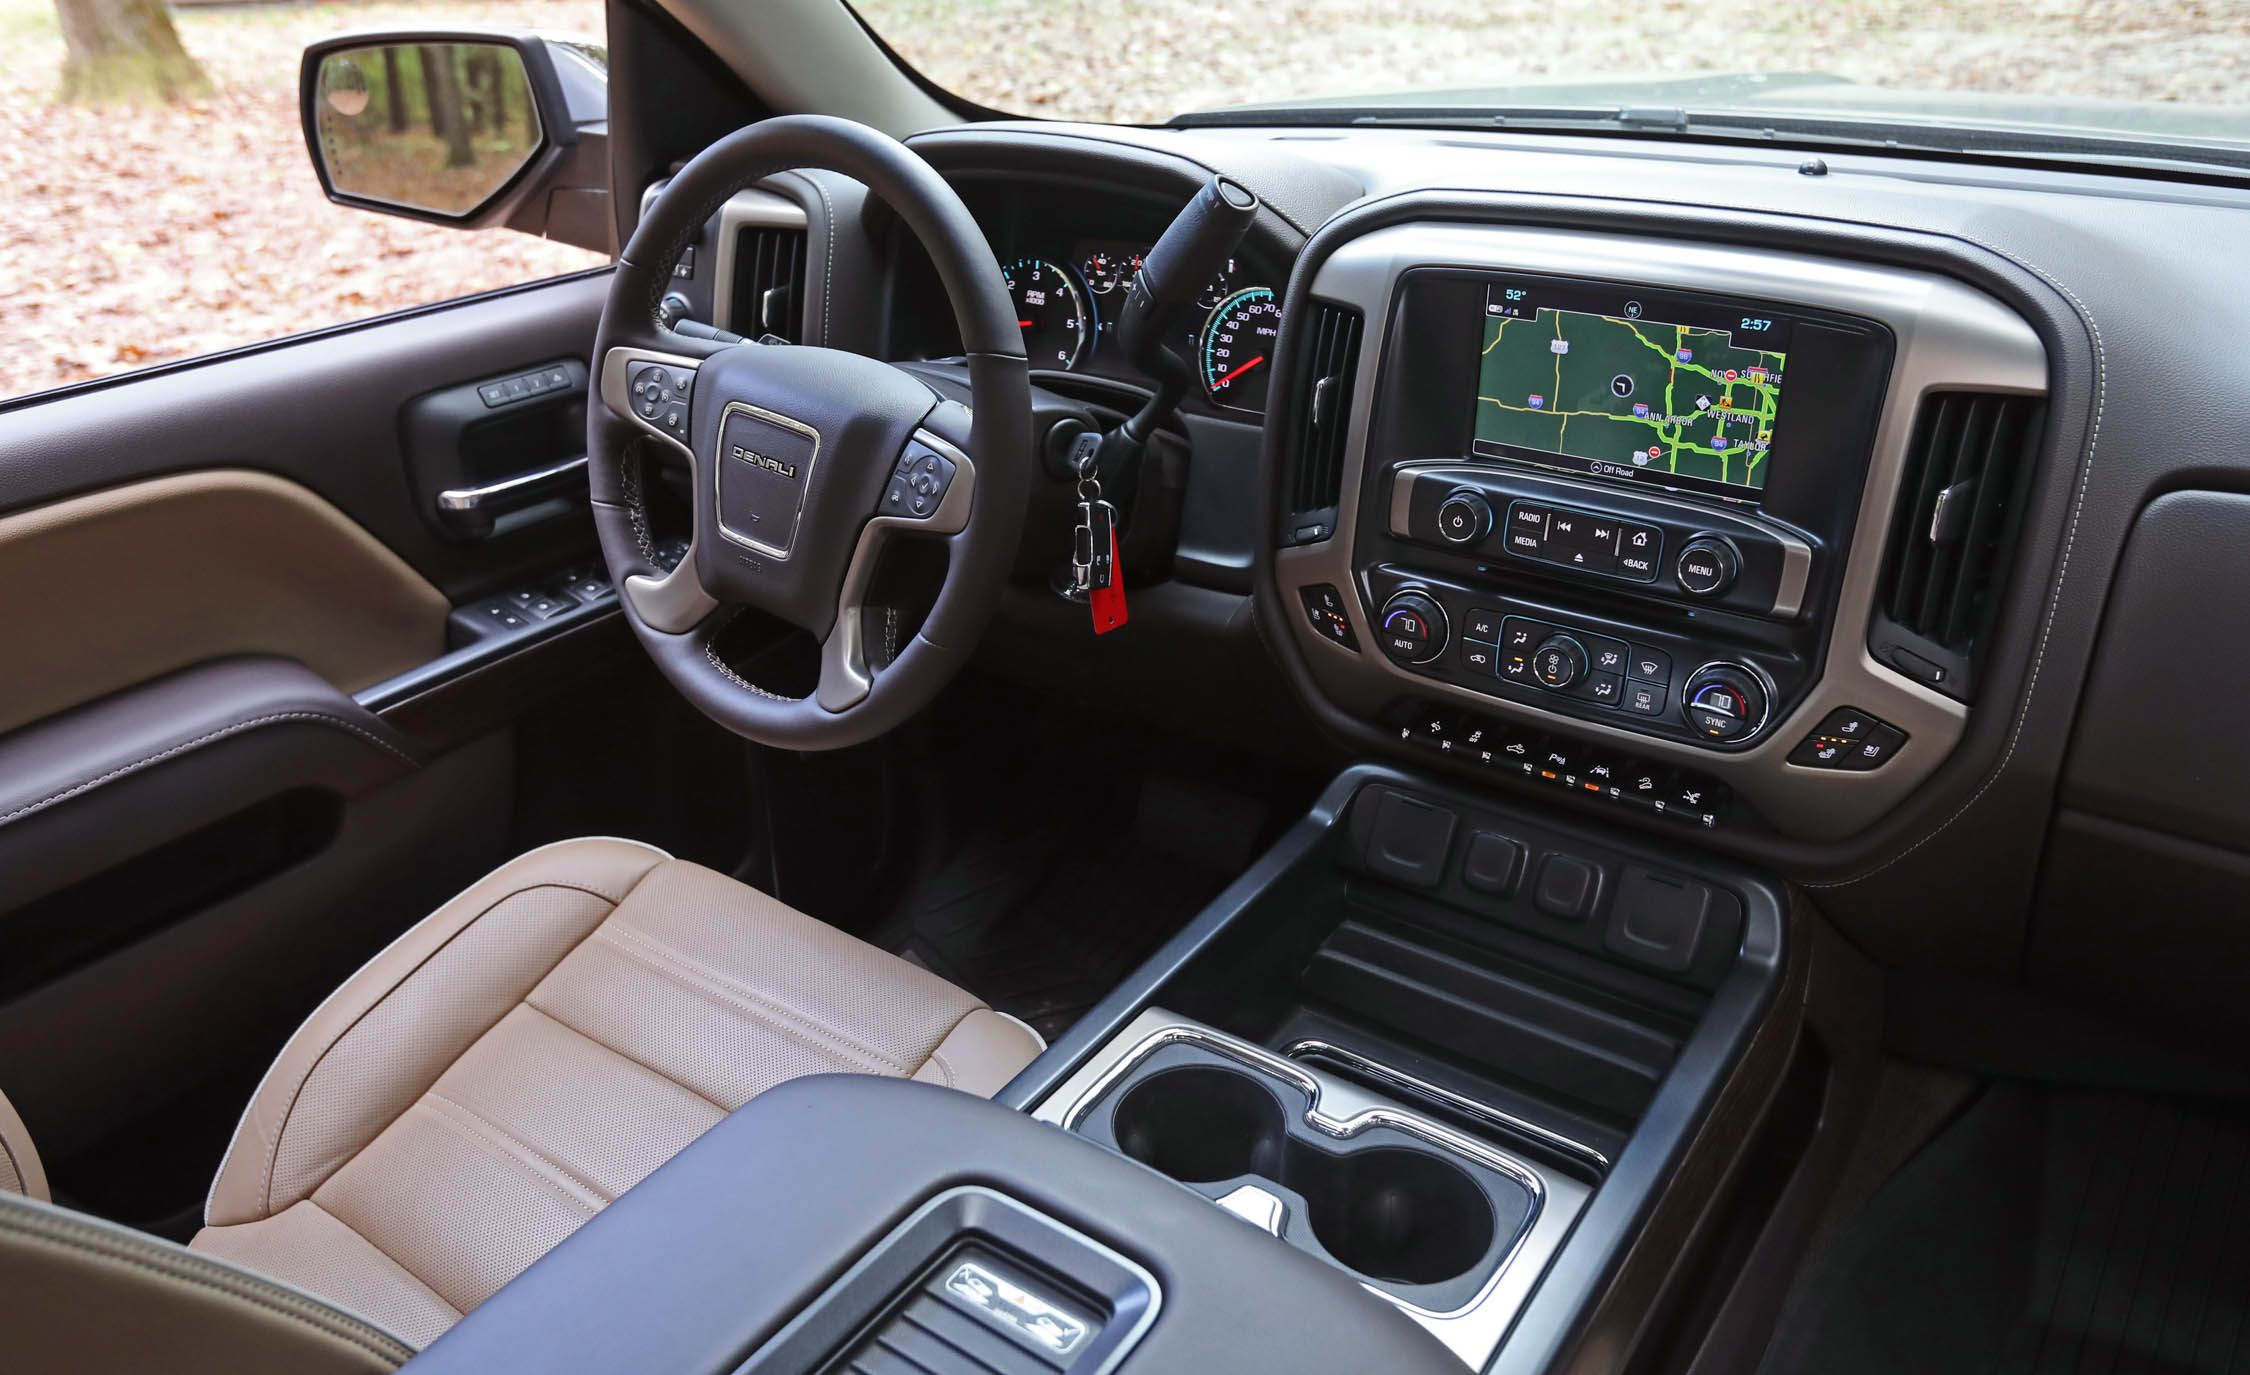 2017 Gmc Sierra Interior Review Car And Driver